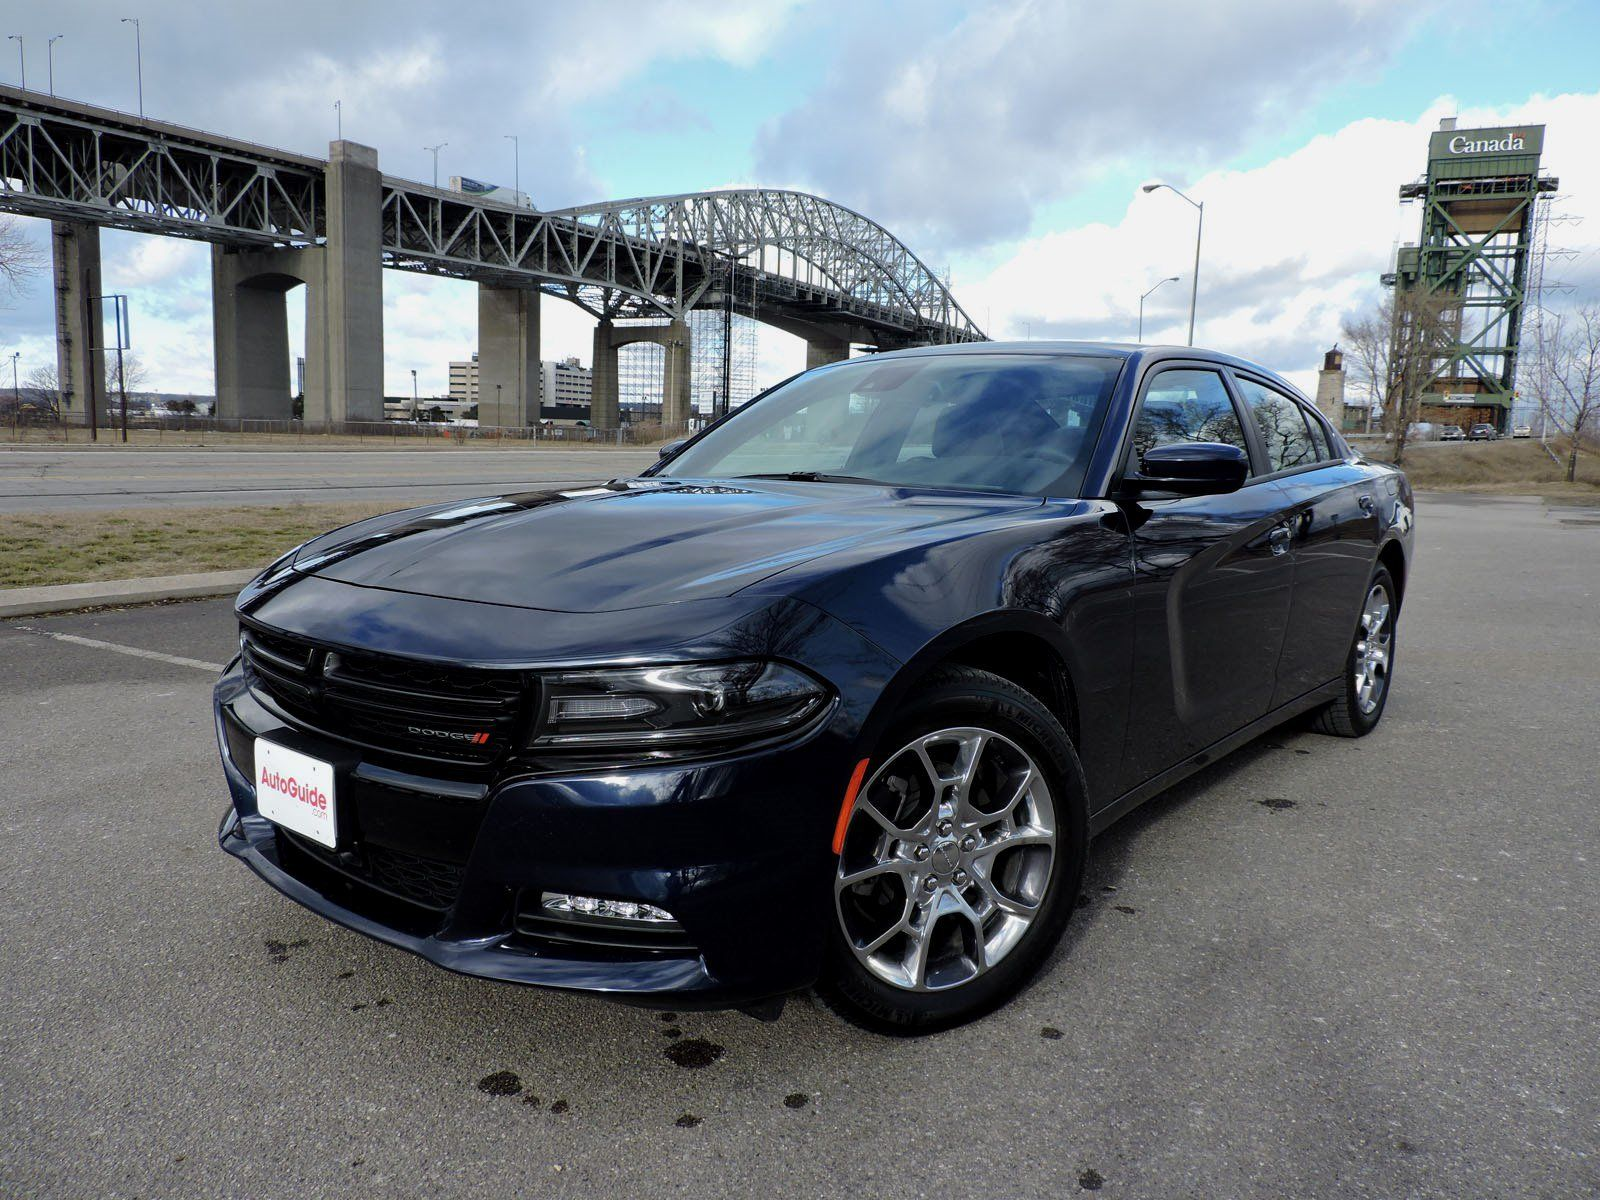 2016 dodge charger sxt awd review new car reviews pinterest dodge charger sxt charger sxt. Black Bedroom Furniture Sets. Home Design Ideas